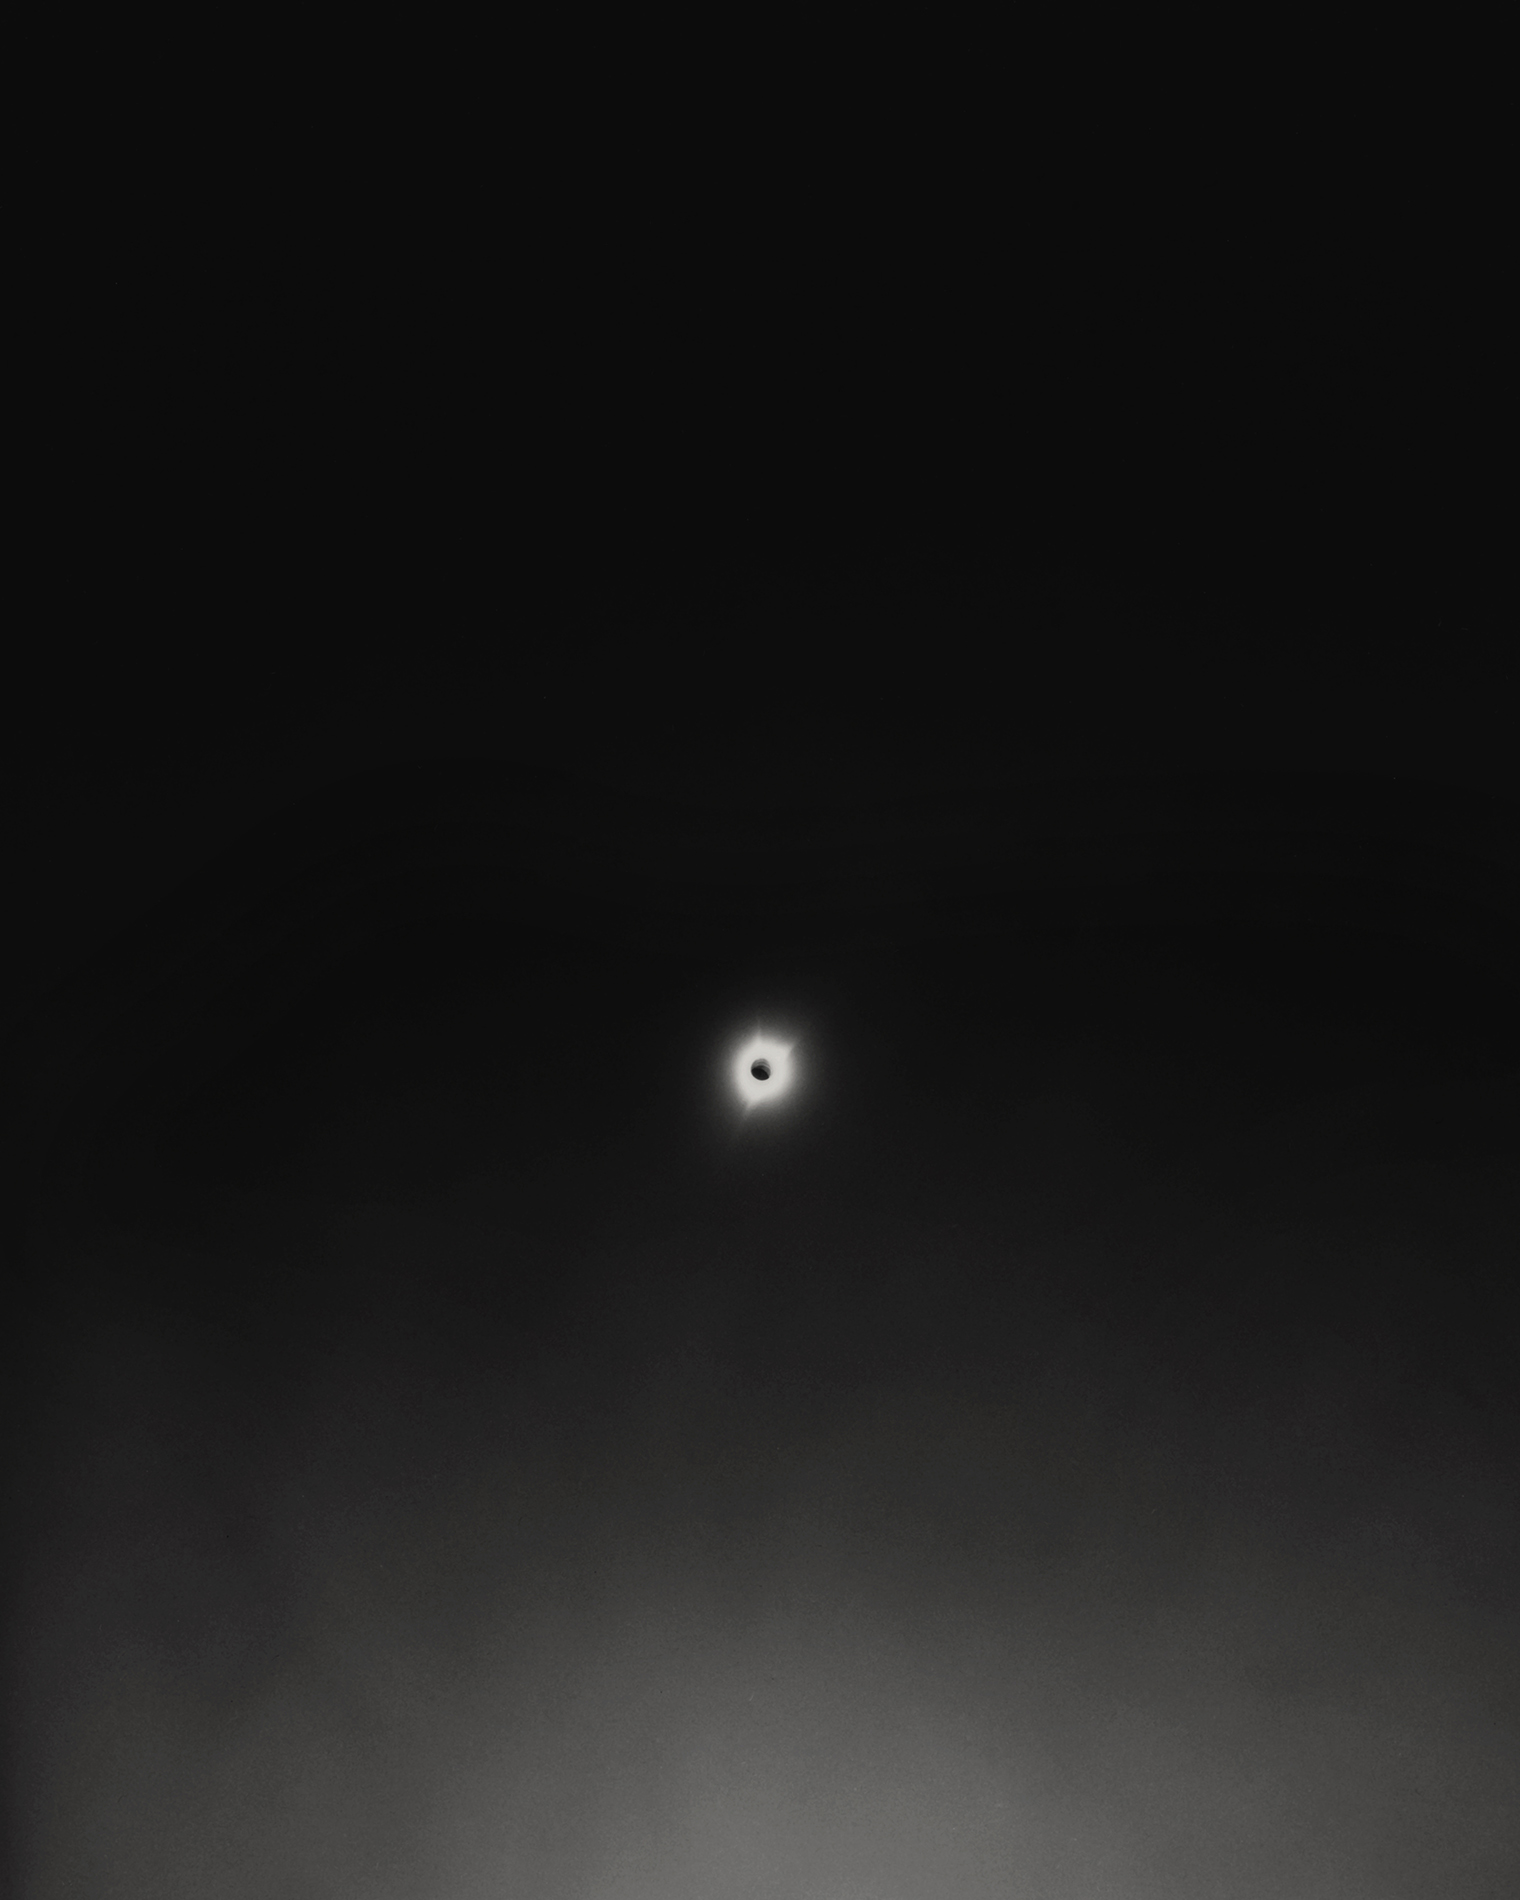 Copy of « Eclipse #1 » by Thomas Paquet